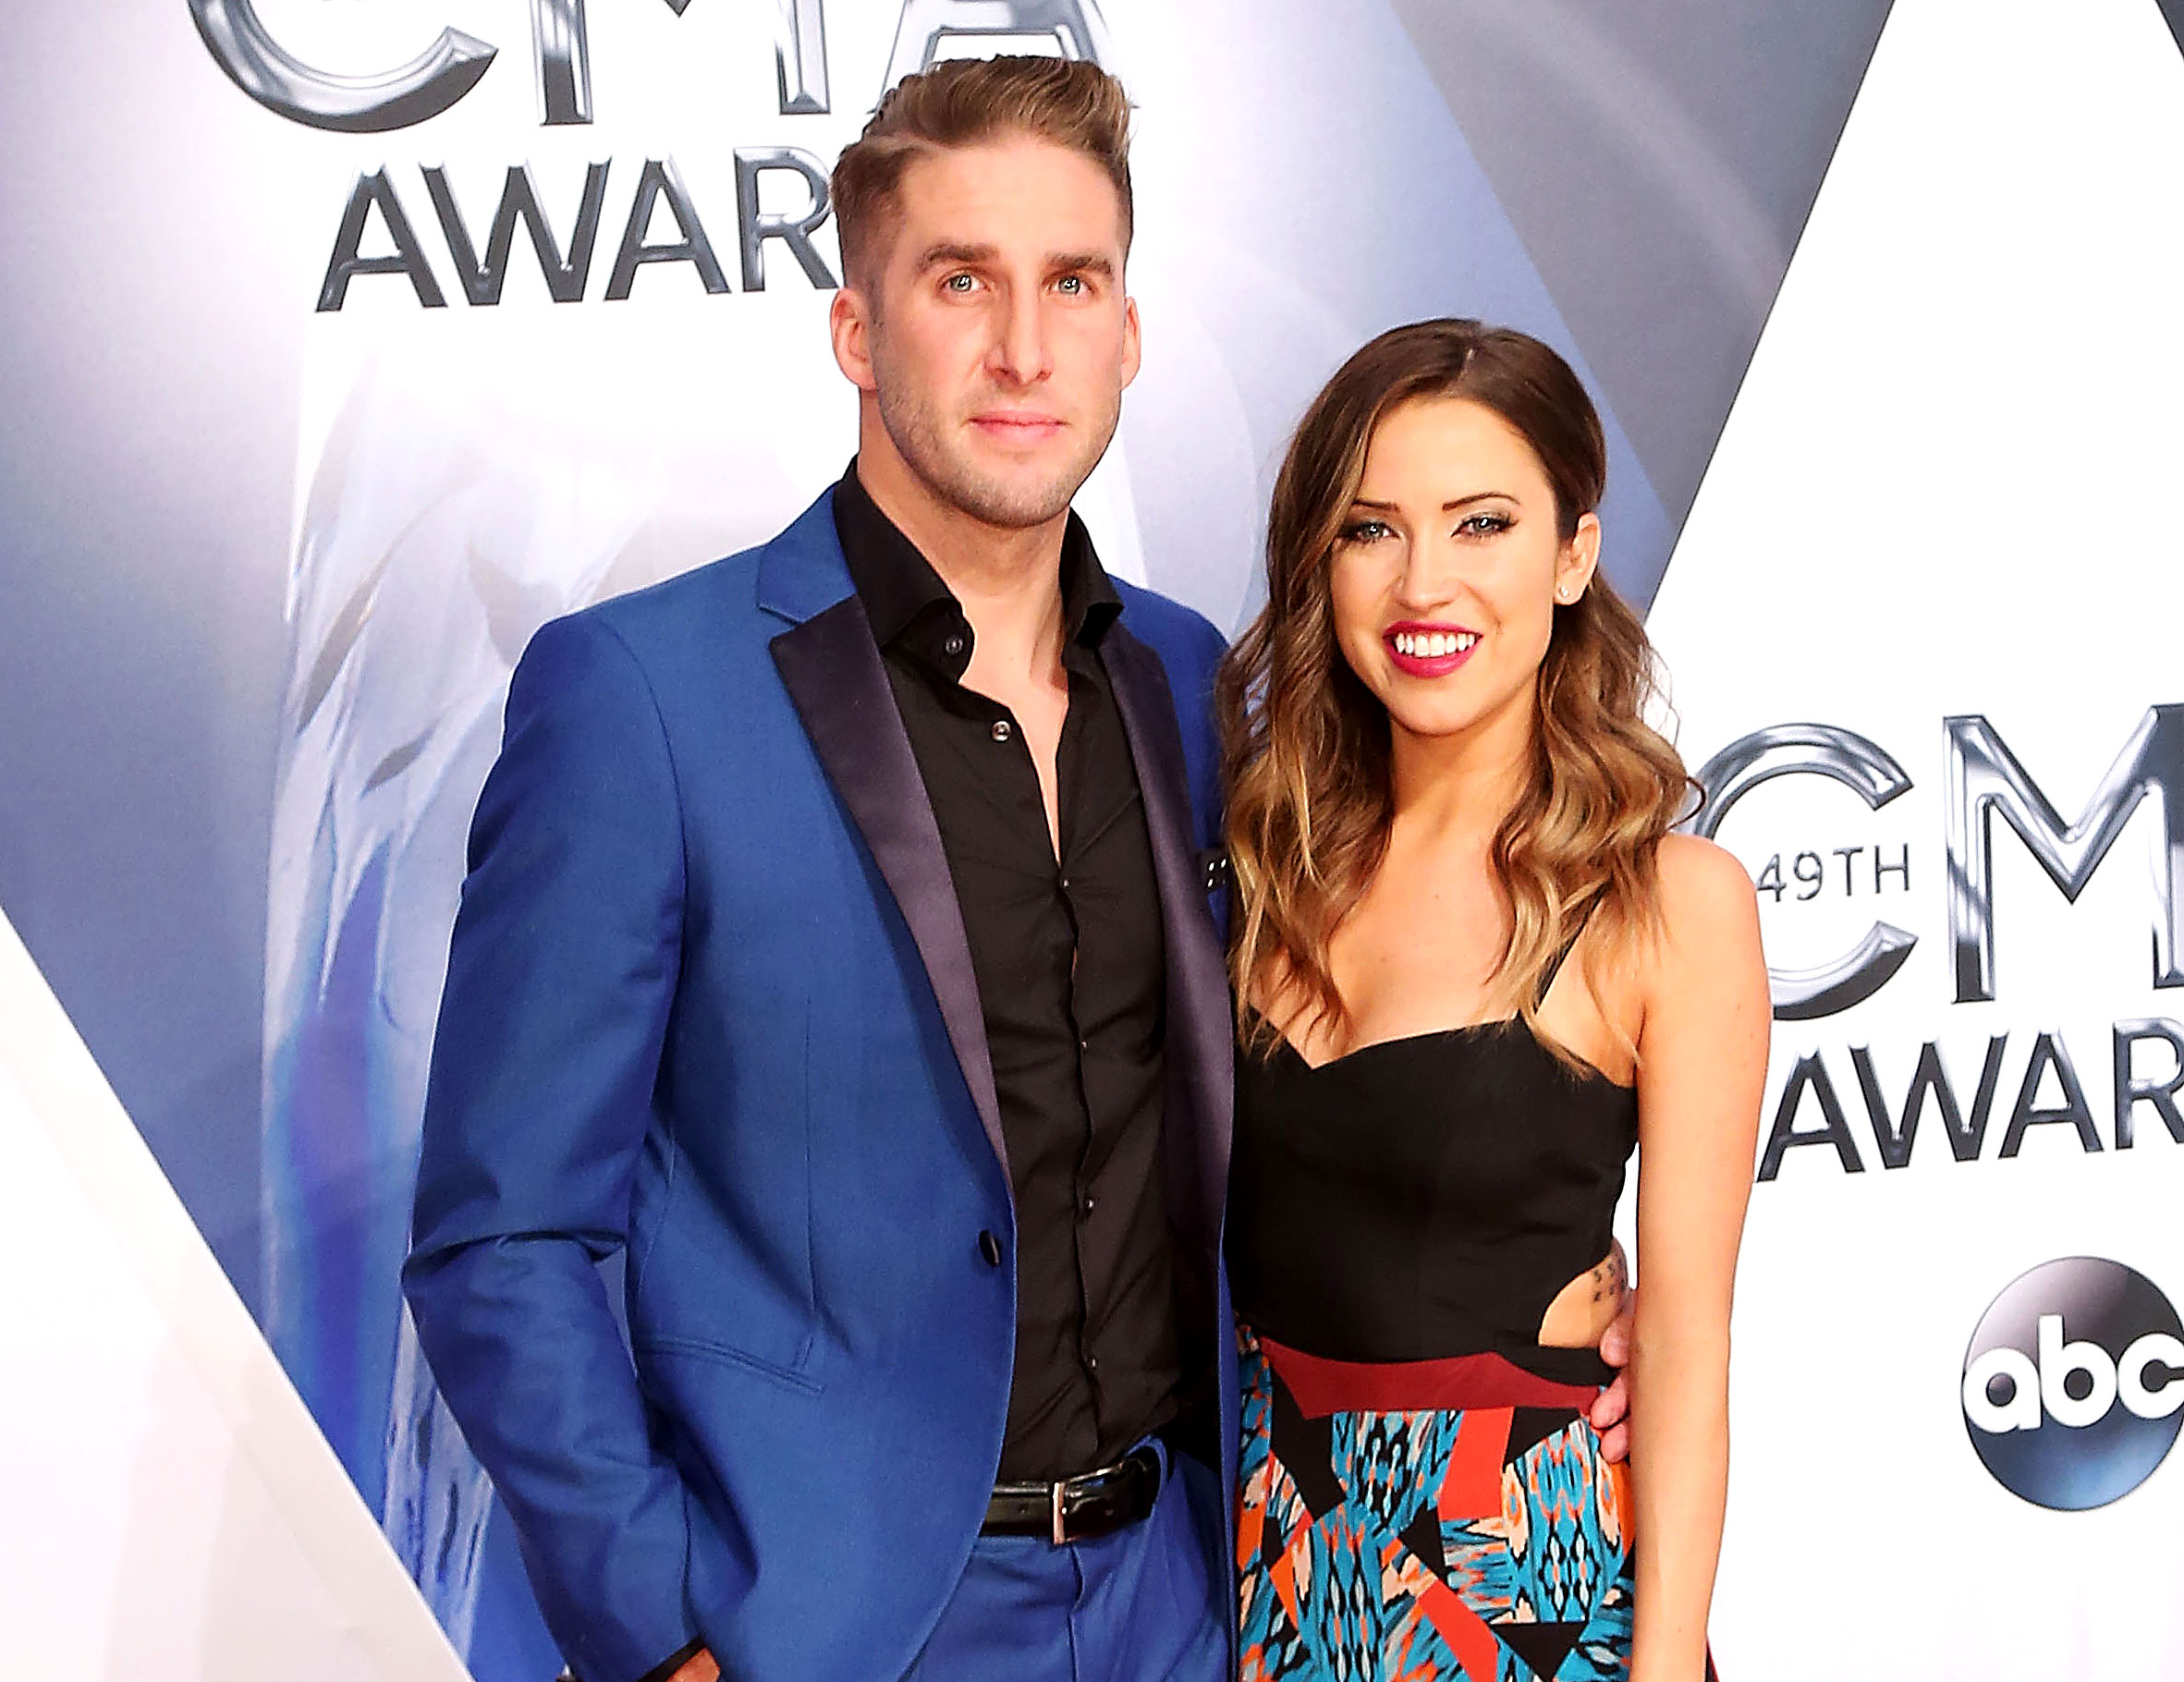 Kaitlyn Bristowe Shares Breakup Journey With Shawn Booth: 'We Held Off So Many Times Because We Didn't Want to Face' the Public - Shawn Booth and Kaitlyn Bristowe attend the 49th annual CMA Awards at the Bridgestone Arena on November 4, 2015 in Nashville, Tennessee.